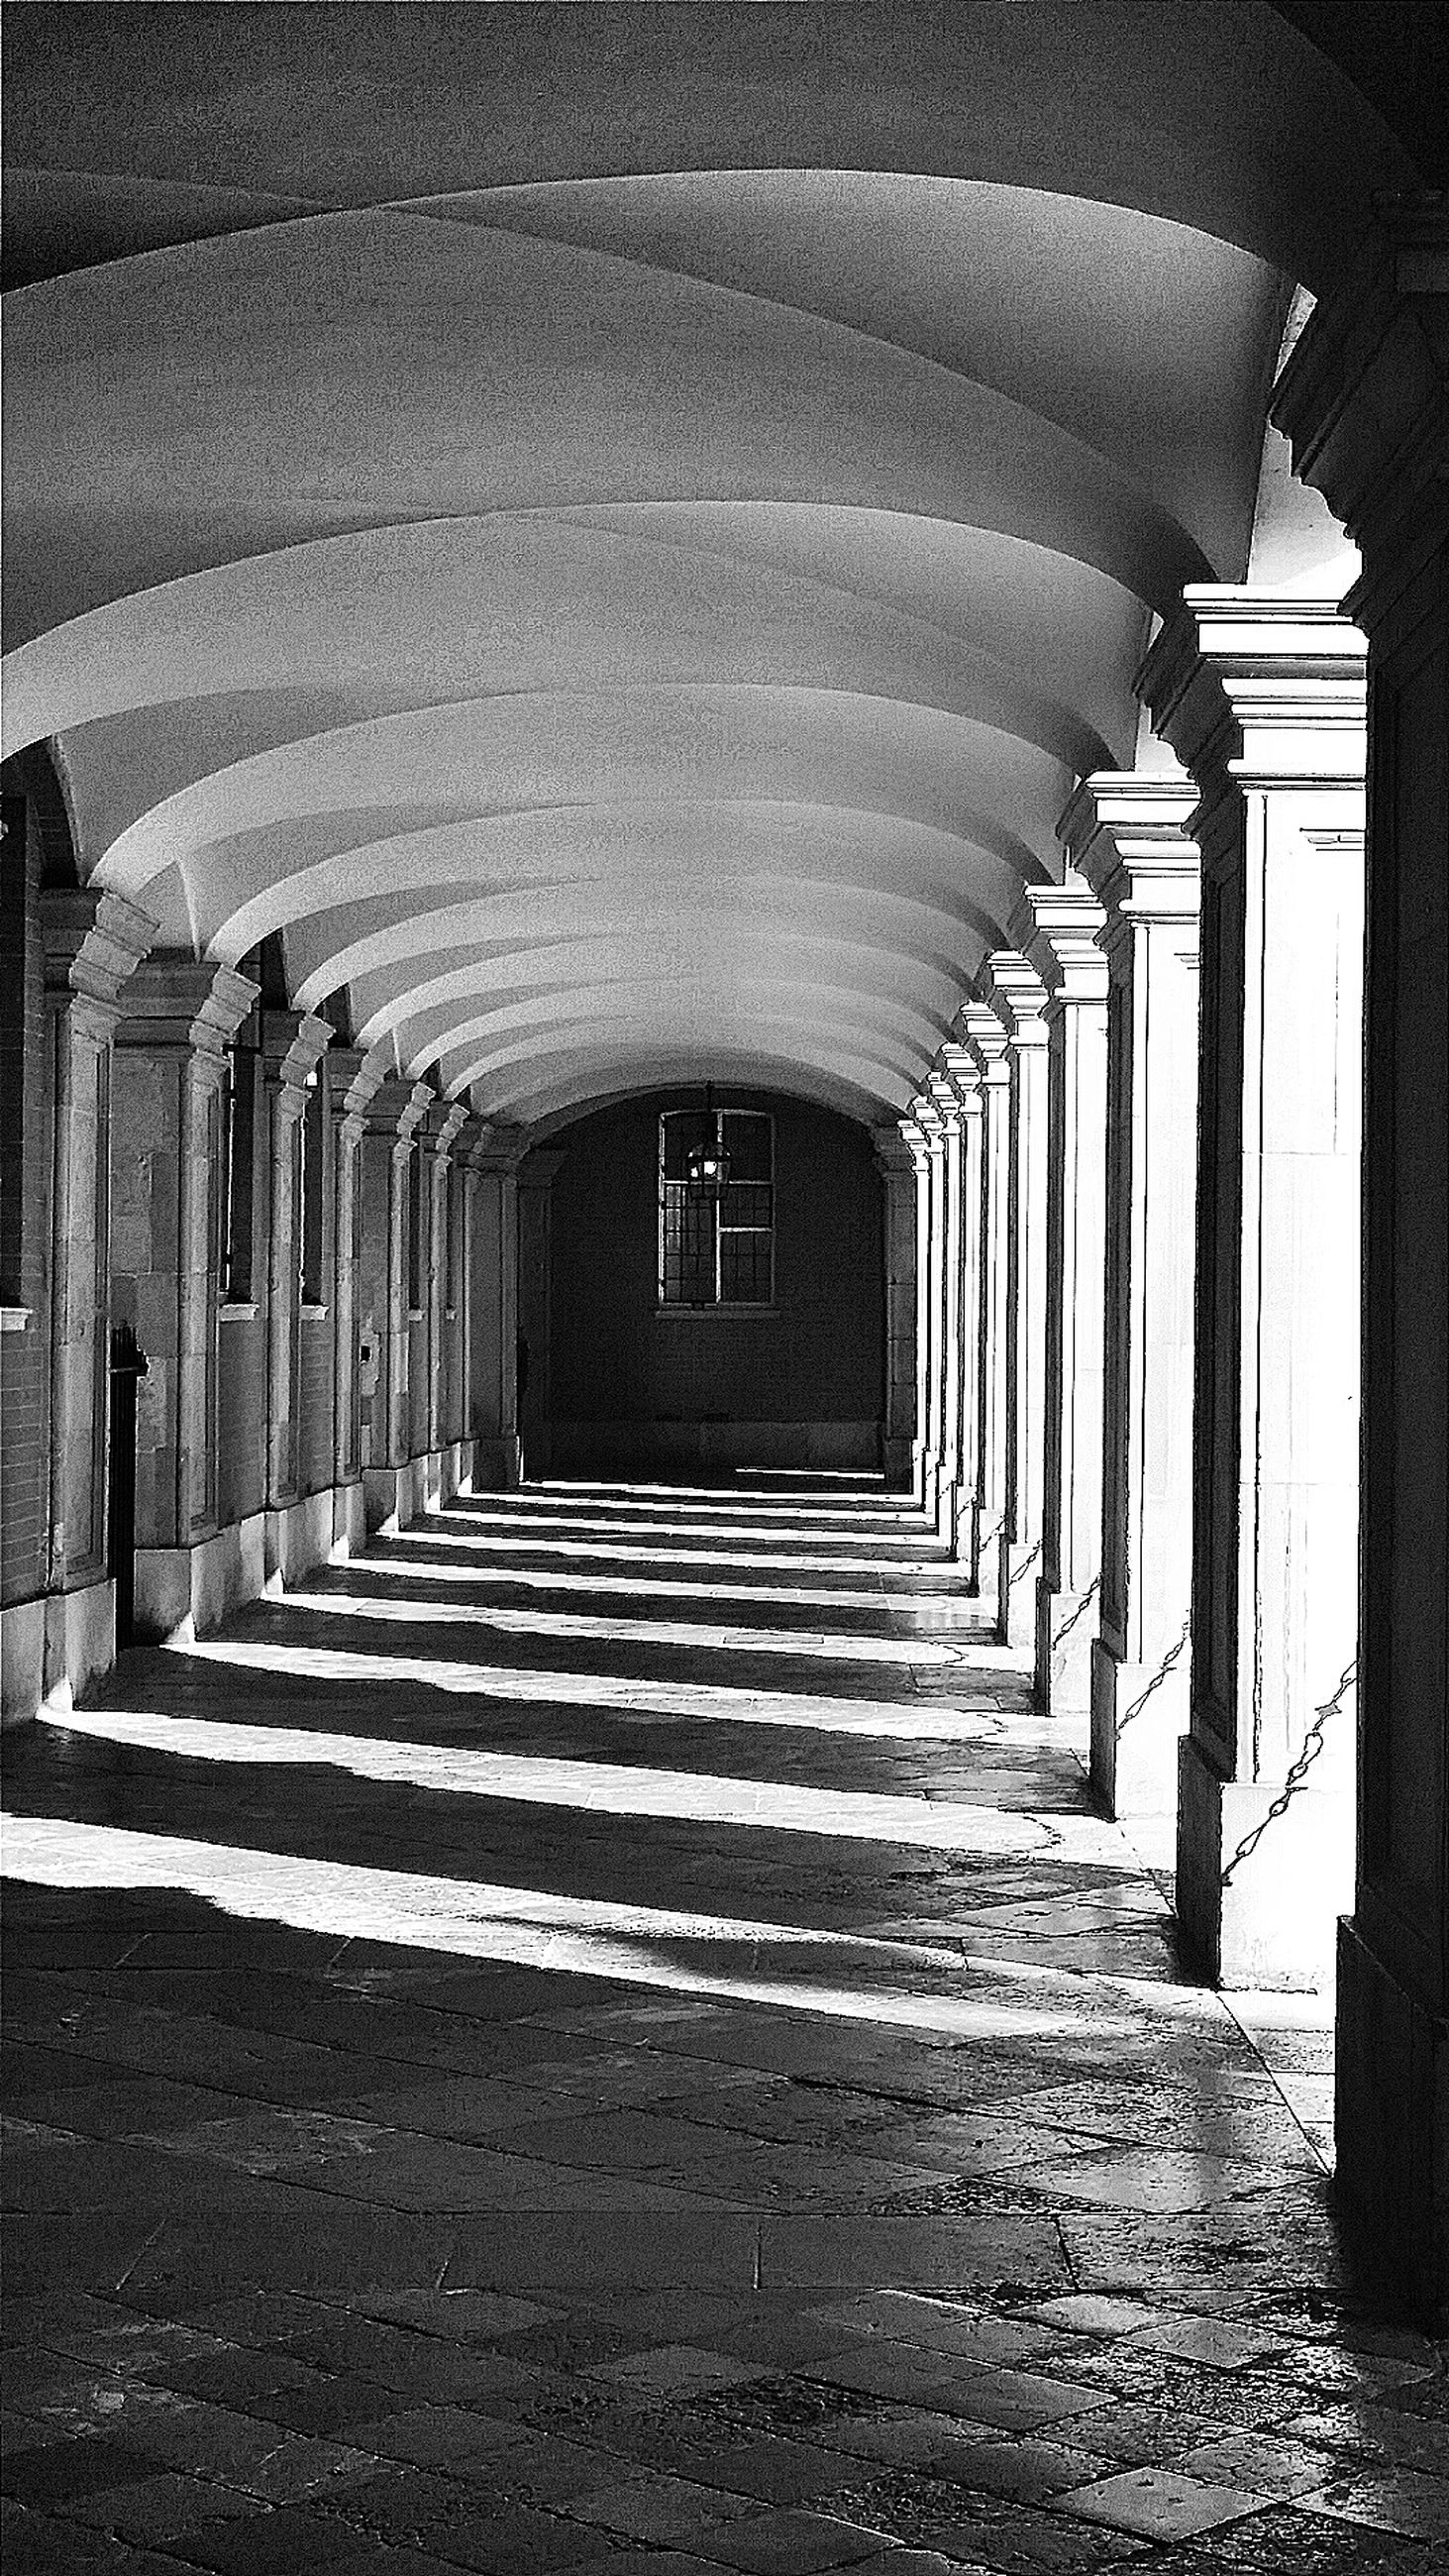 architecture, built structure, the way forward, indoors, corridor, diminishing perspective, architectural column, colonnade, in a row, column, vanishing point, ceiling, empty, building, arch, building exterior, steps, absence, wall - building feature, no people